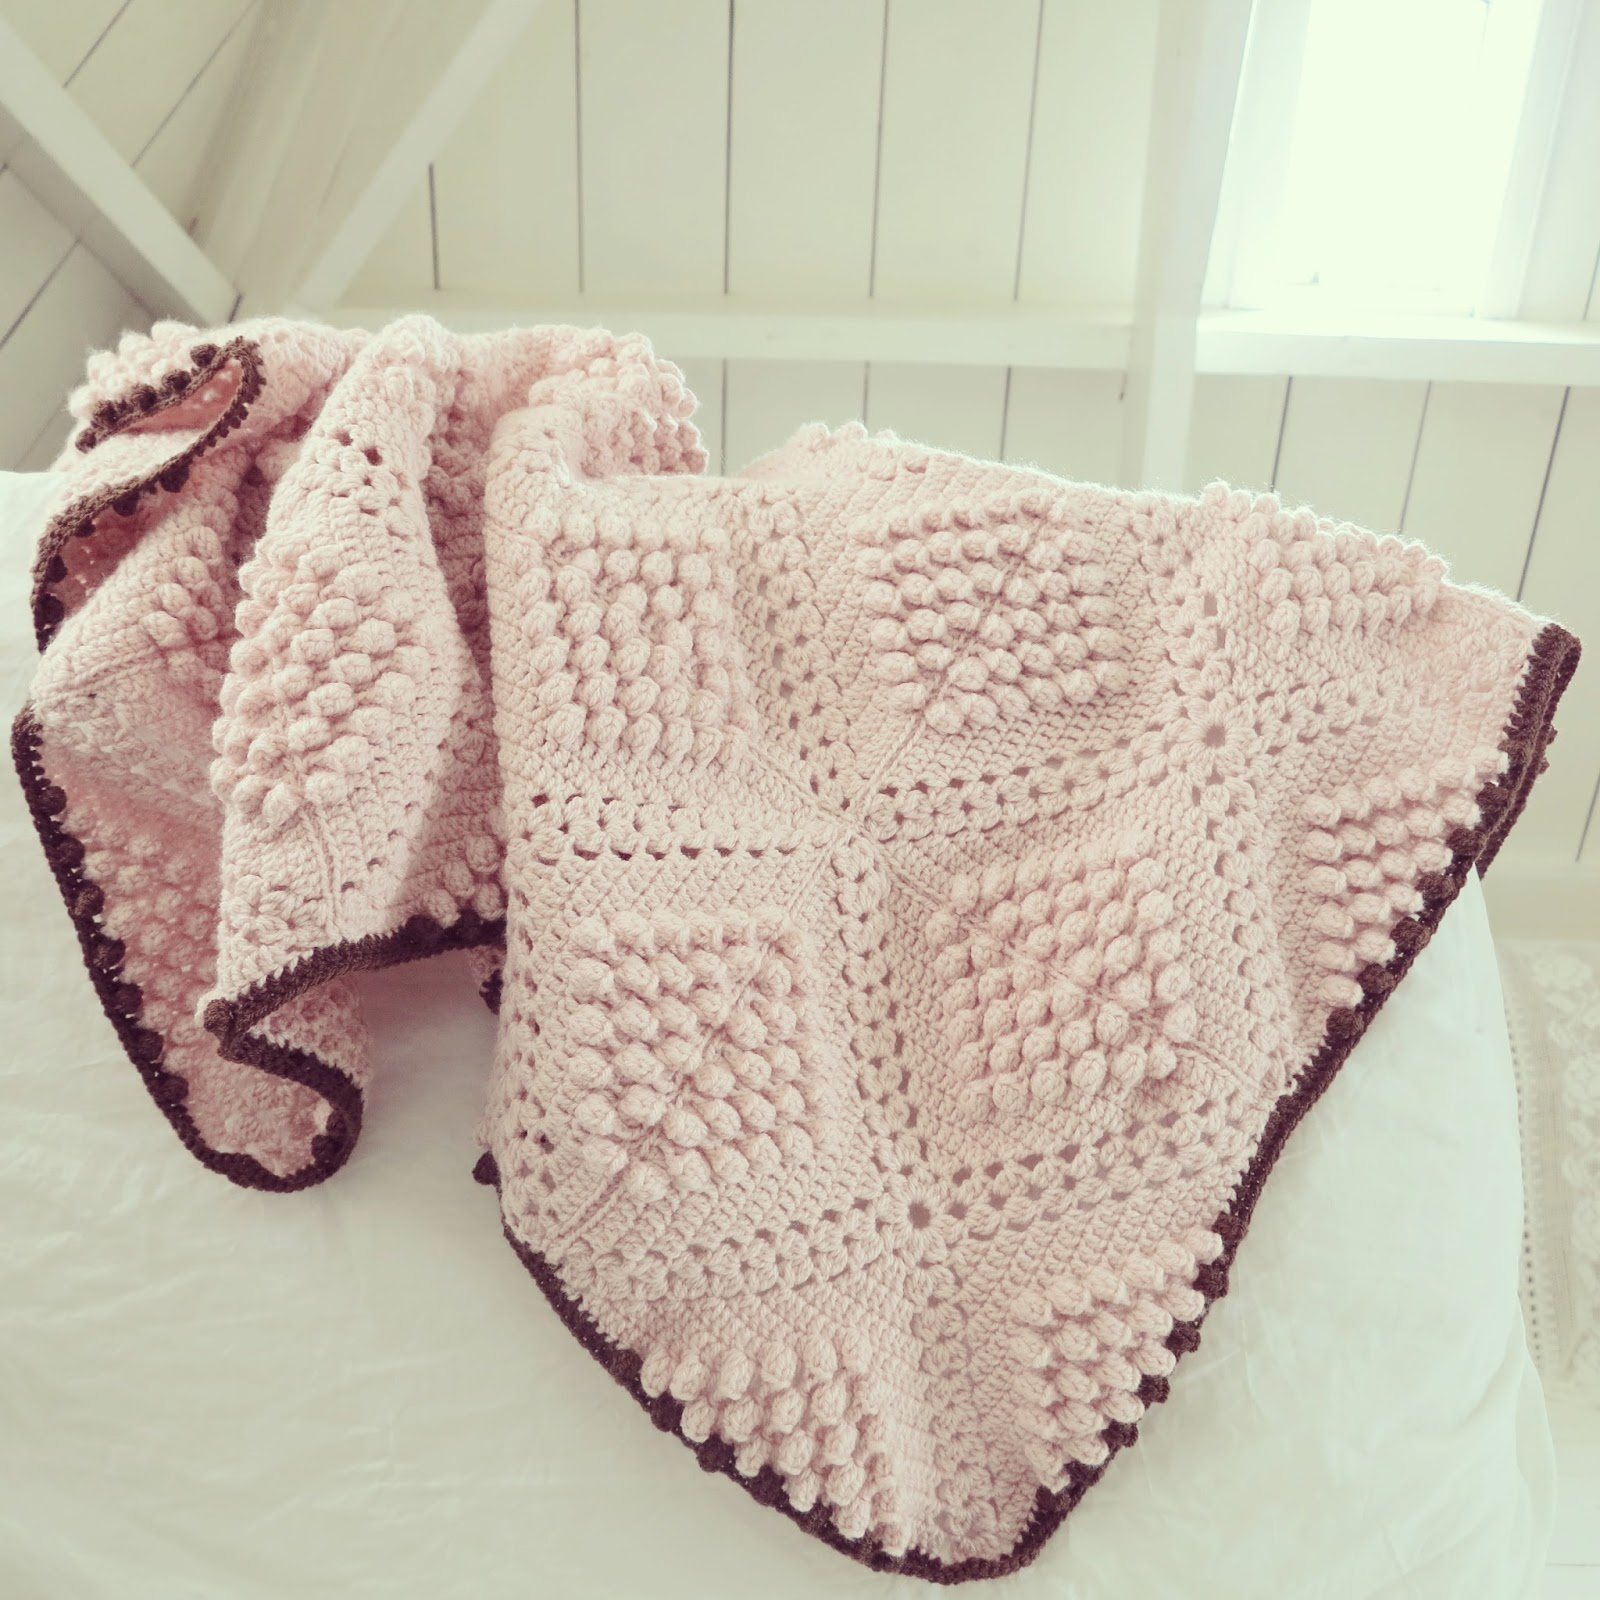 Knitting Pattern For Popcorn Baby Blanket : ByHaafner * crochet : Pattern * popcorn blanket